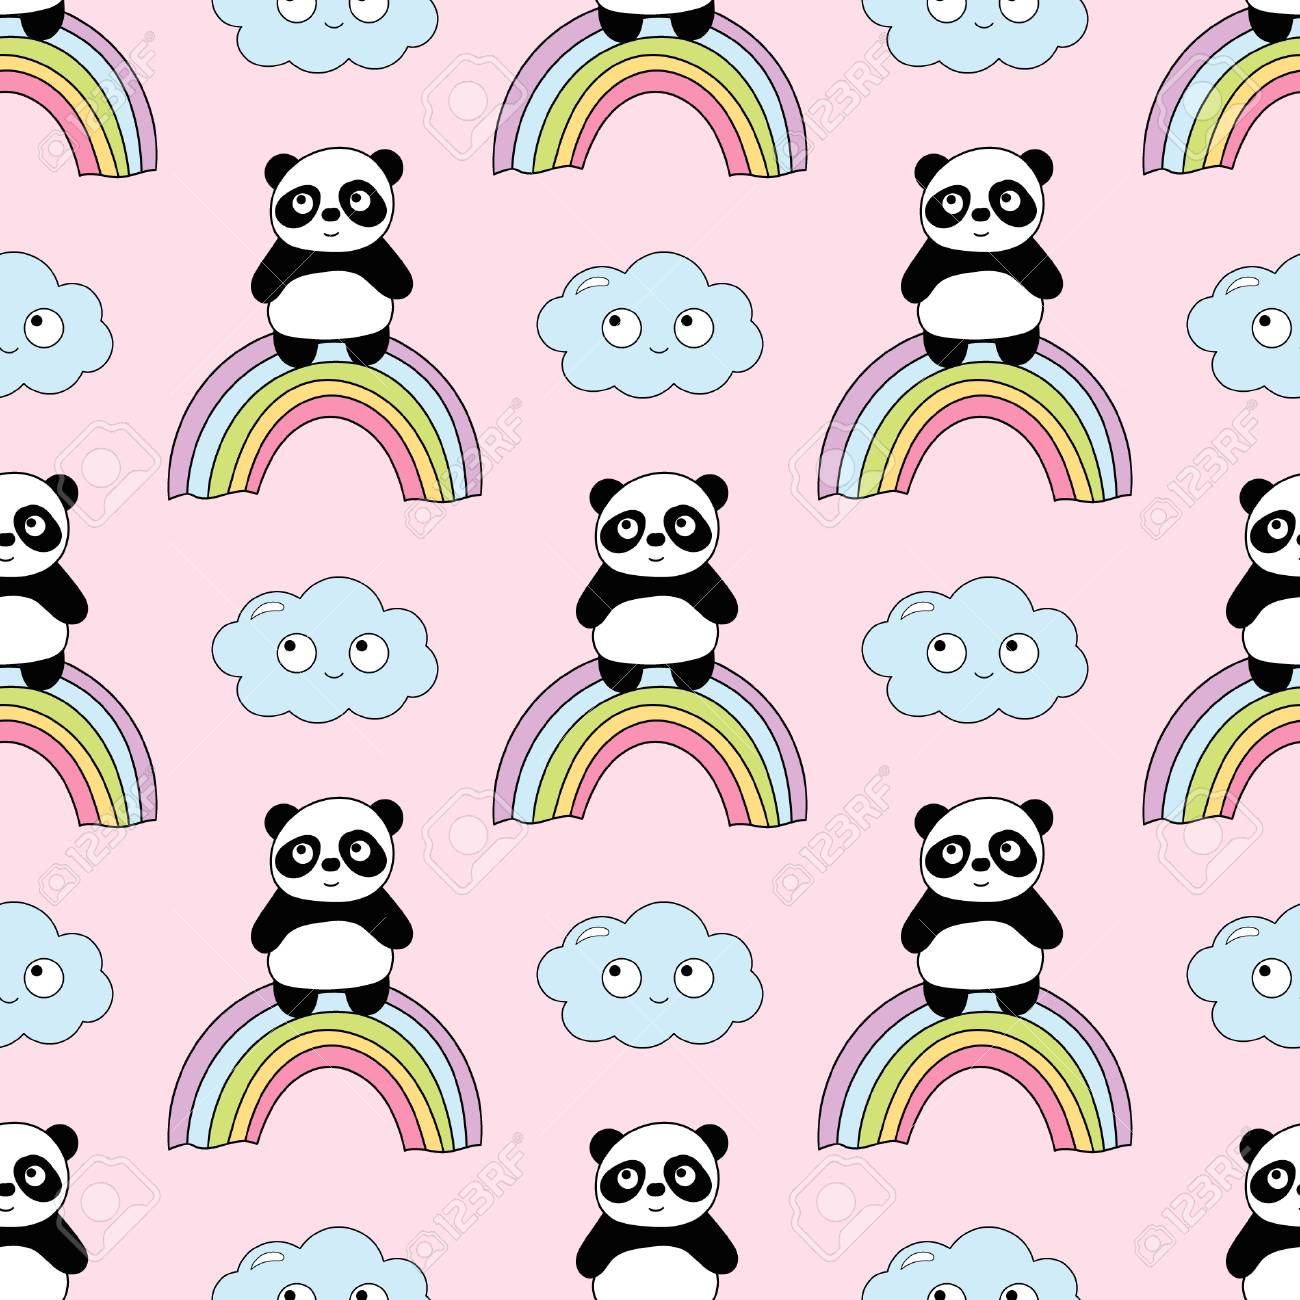 seamless baby pattern with cute pandas best choice for cards